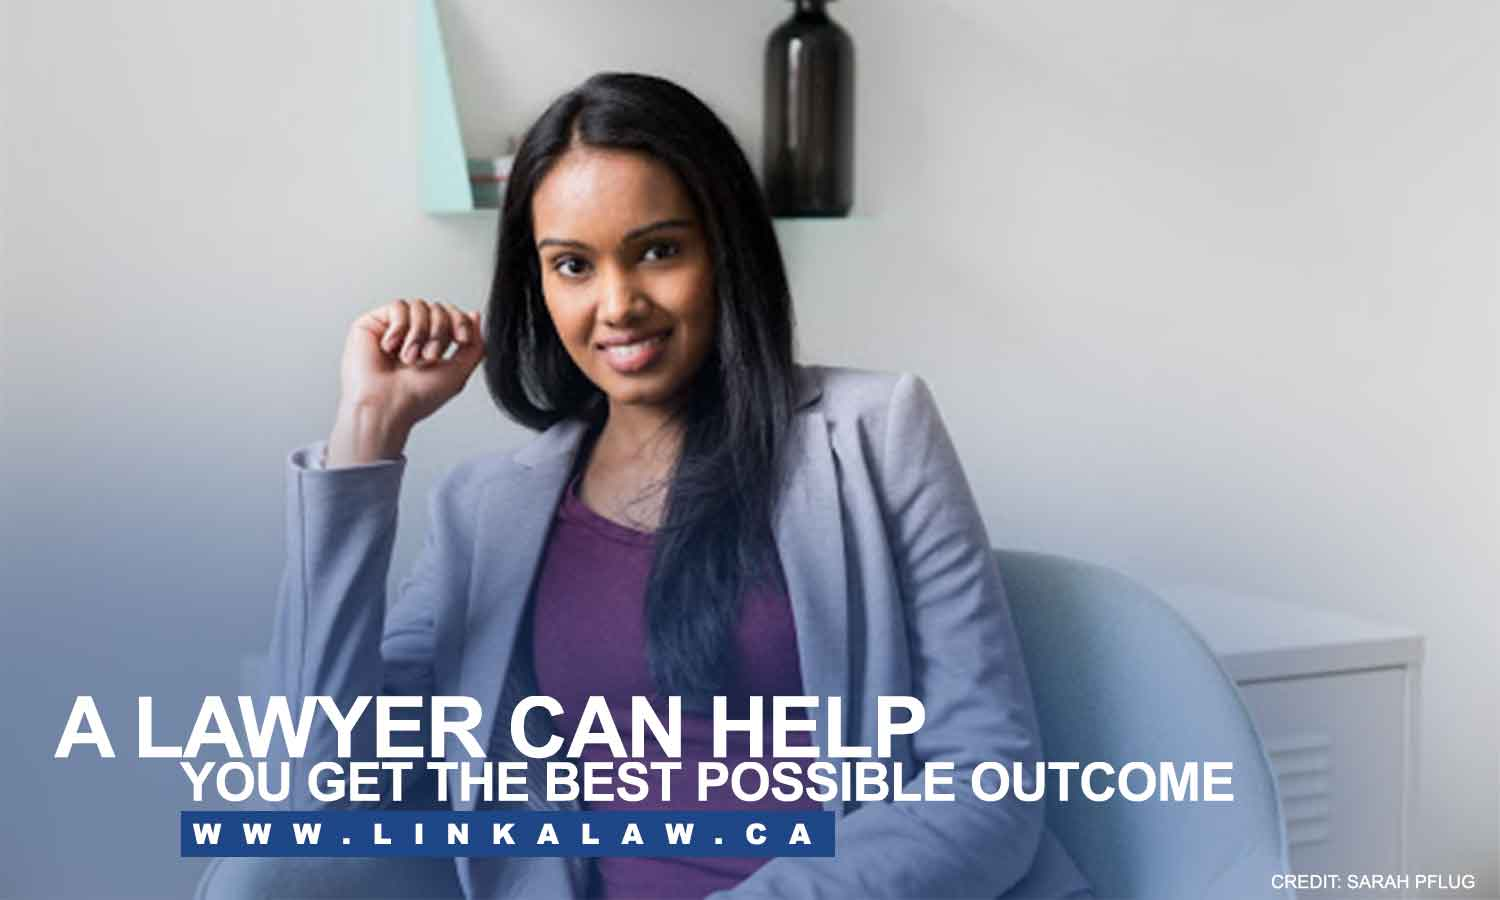 A lawyer can help you get the best possible outcome